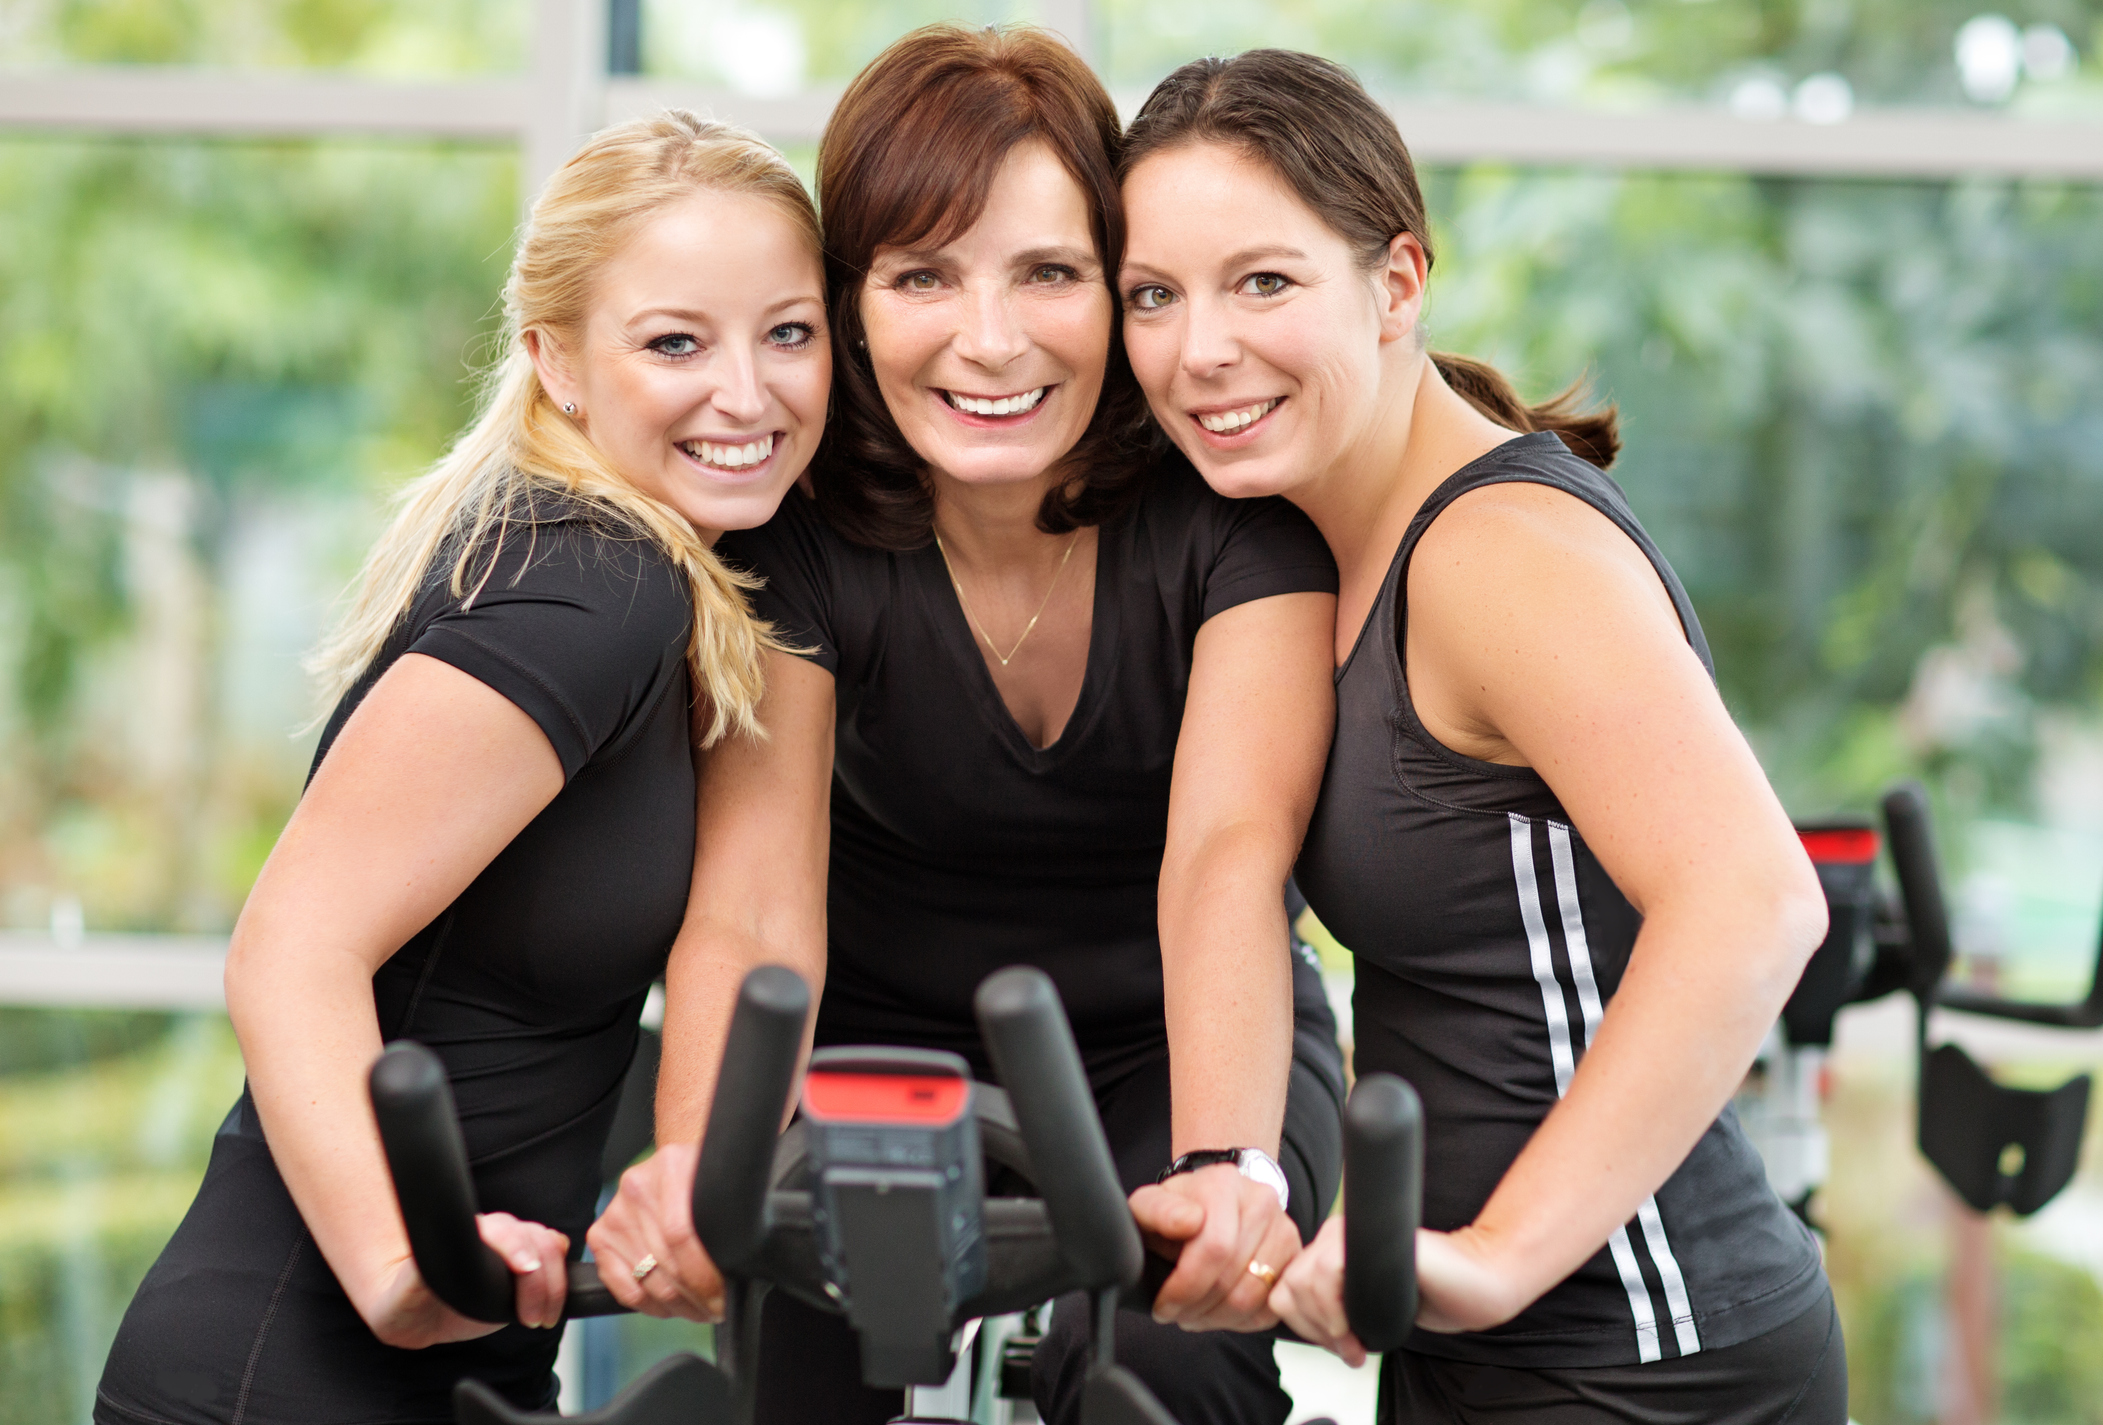 happy-mother-and-daughters-in-exercising-classjpg